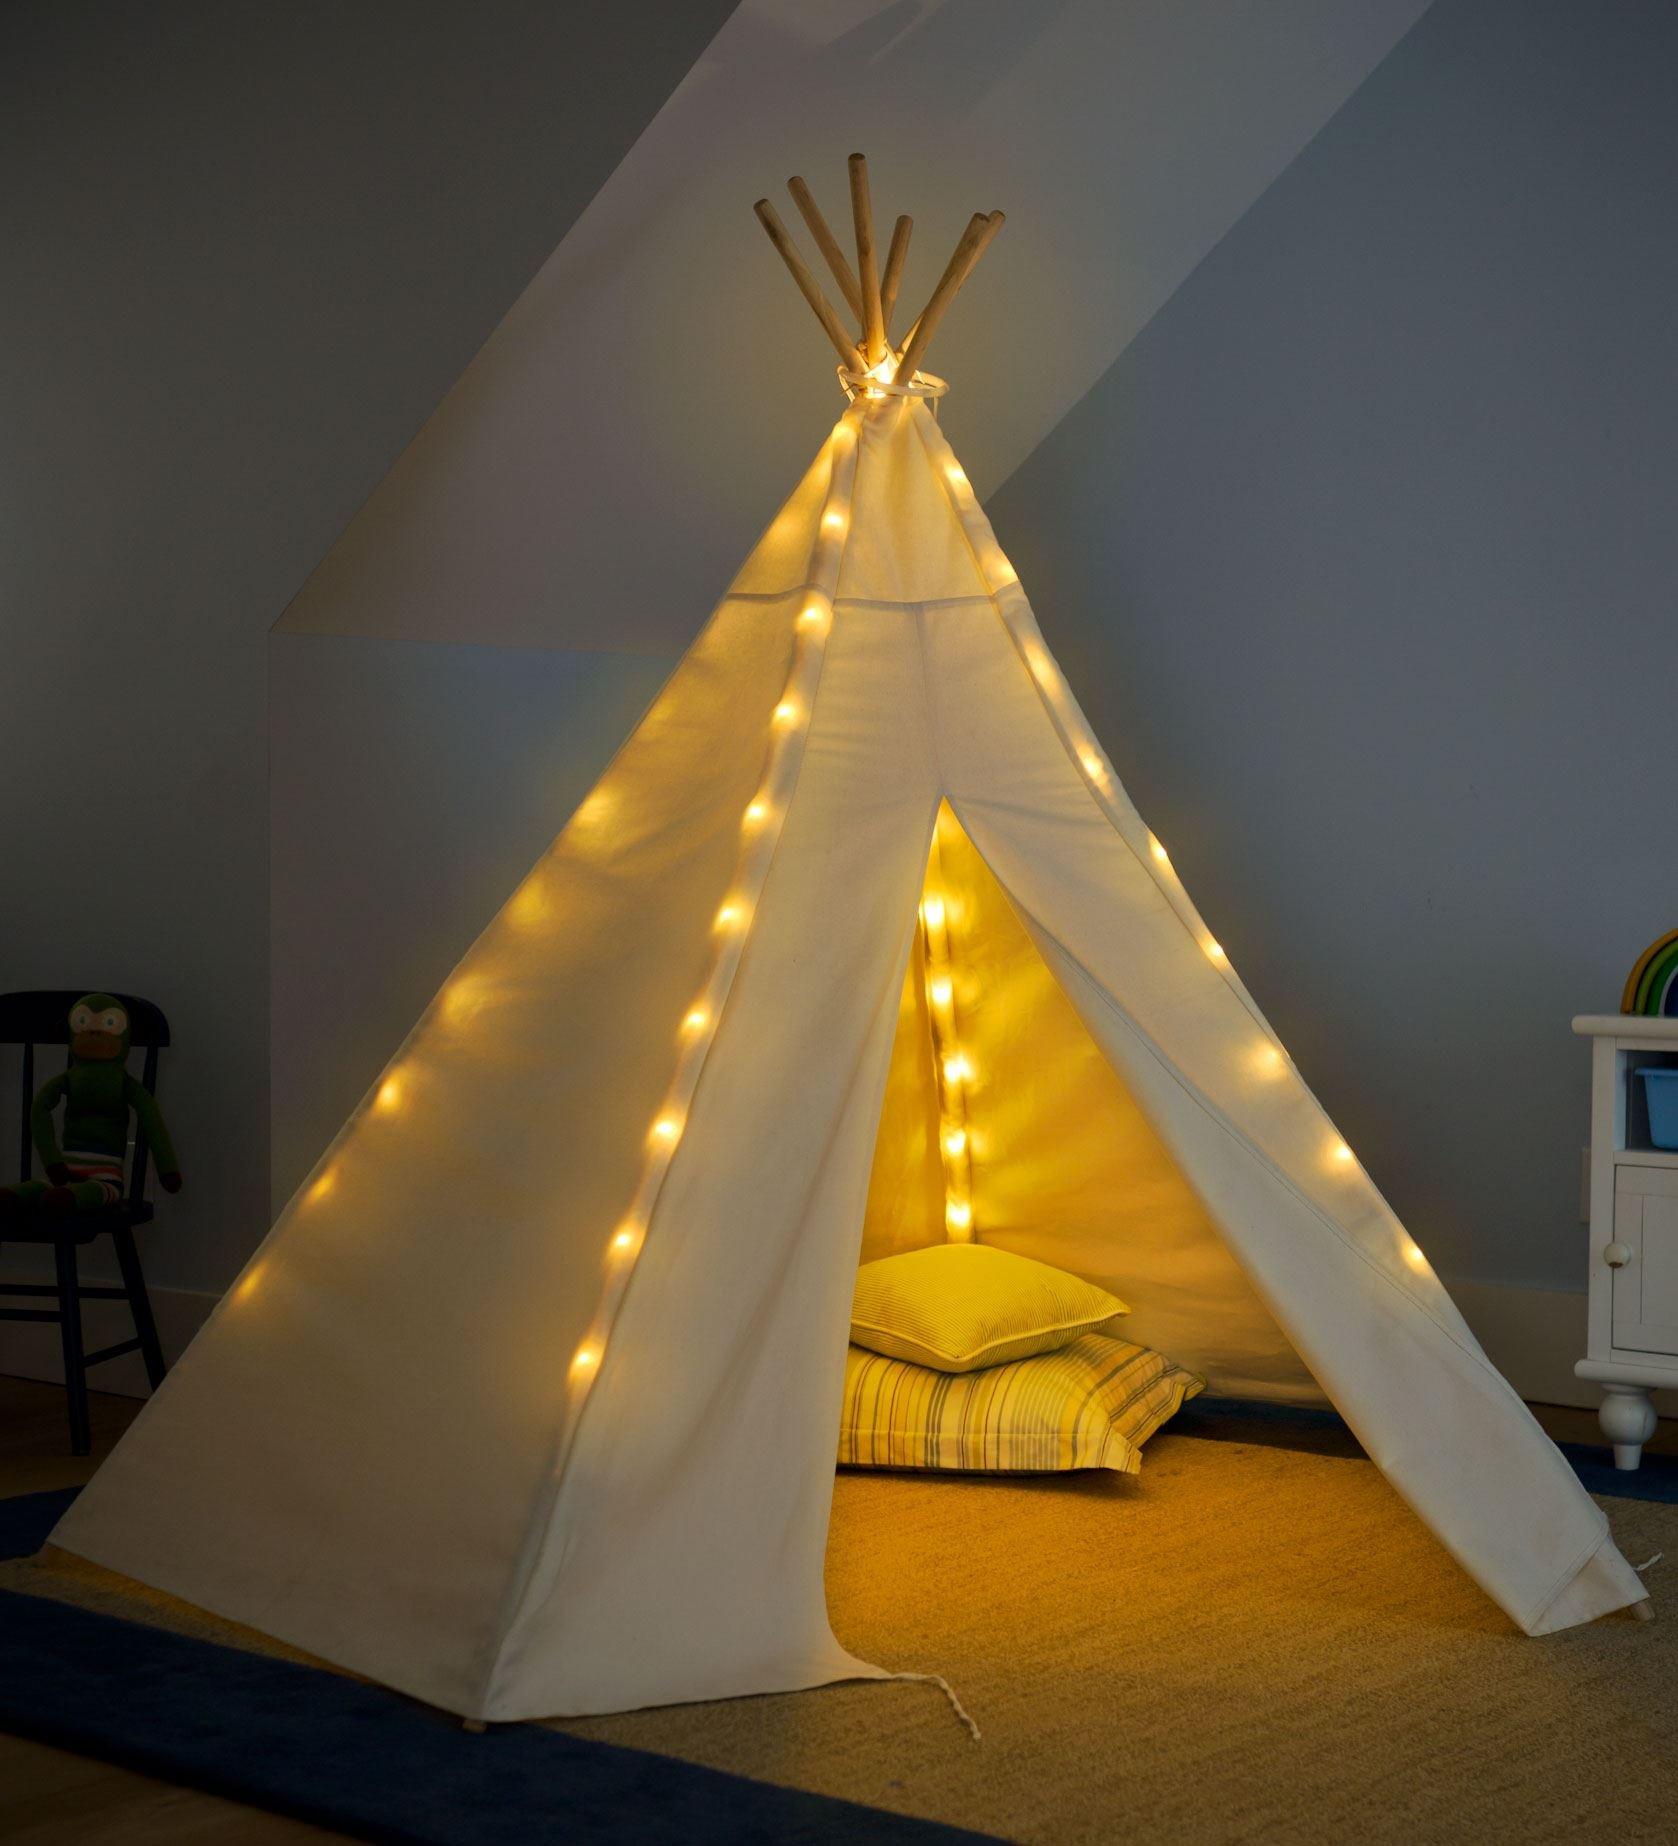 7' Teepee and 7' Teepee Battery-Operated-Lights Special